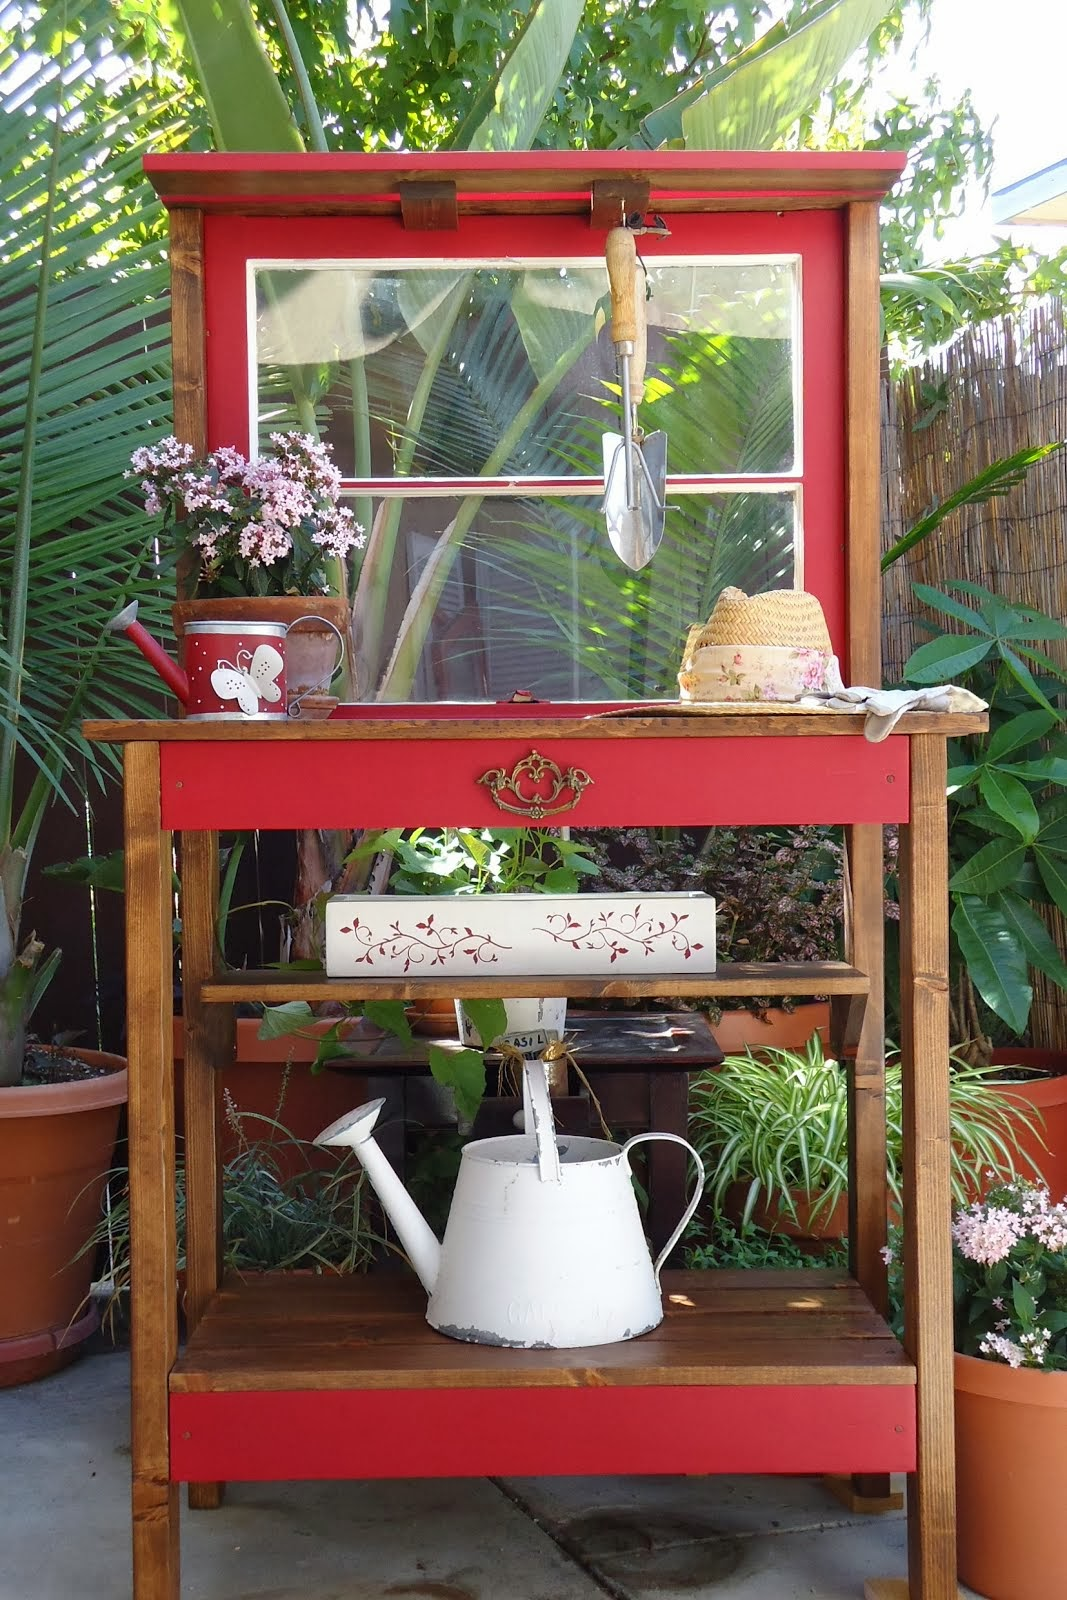 Vintage 2-Pane Window Potting Bench/Table - SOLD